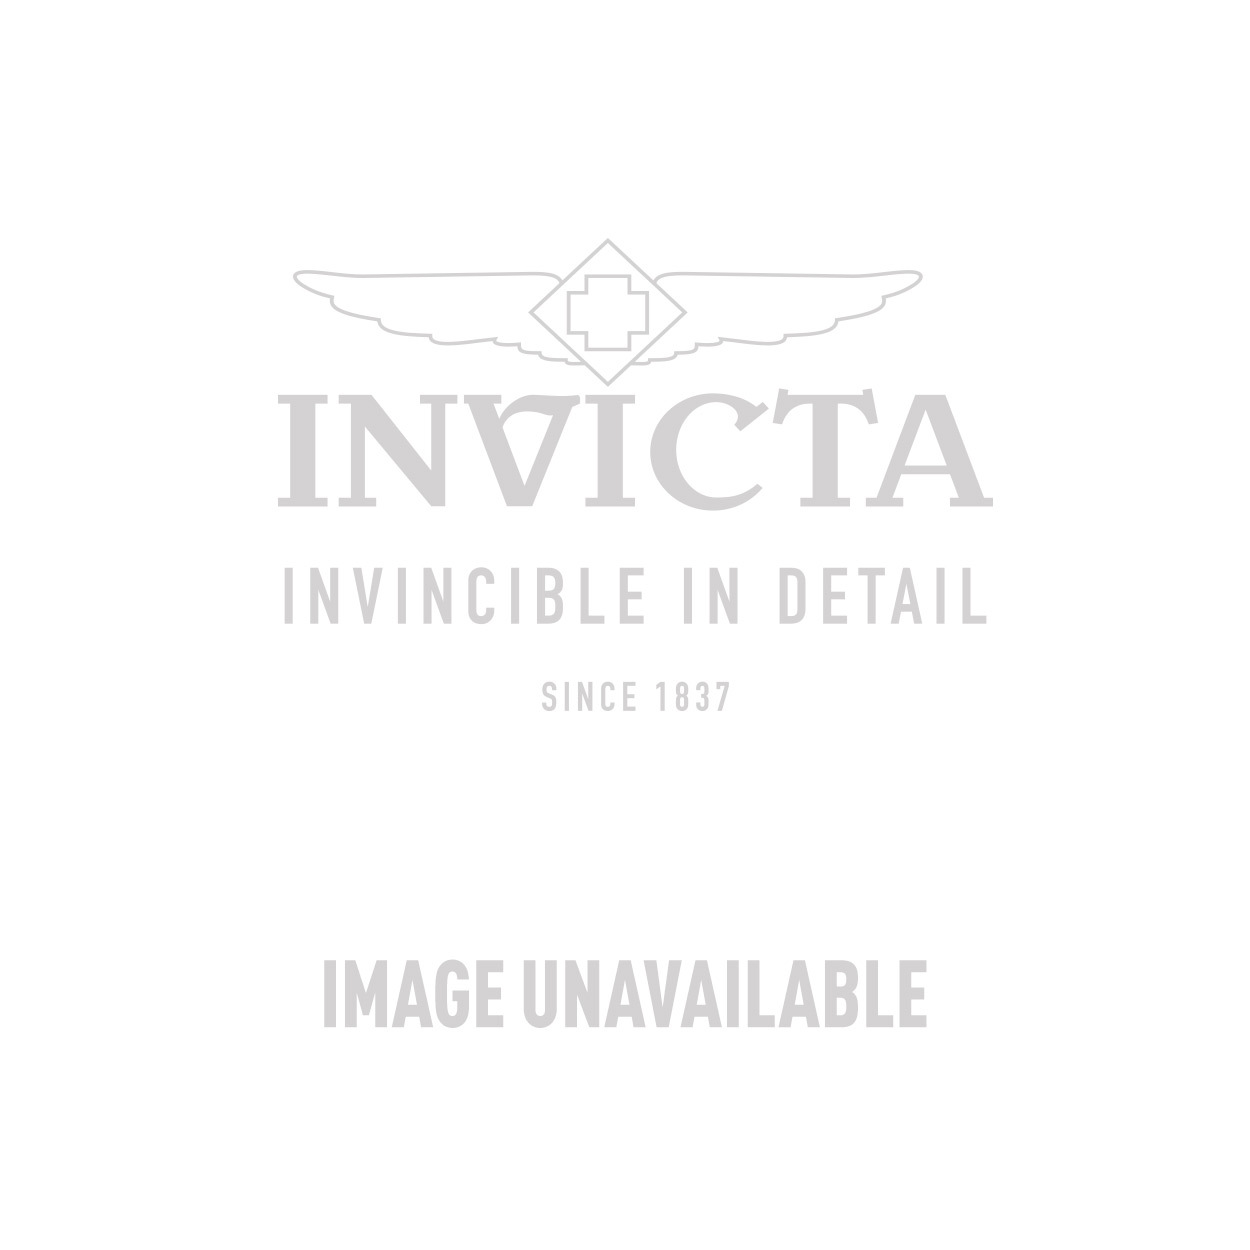 Invicta Coalition Forces Swiss Made Quartz Watch - Stainless Steel case Stainless Steel band - Model 12487